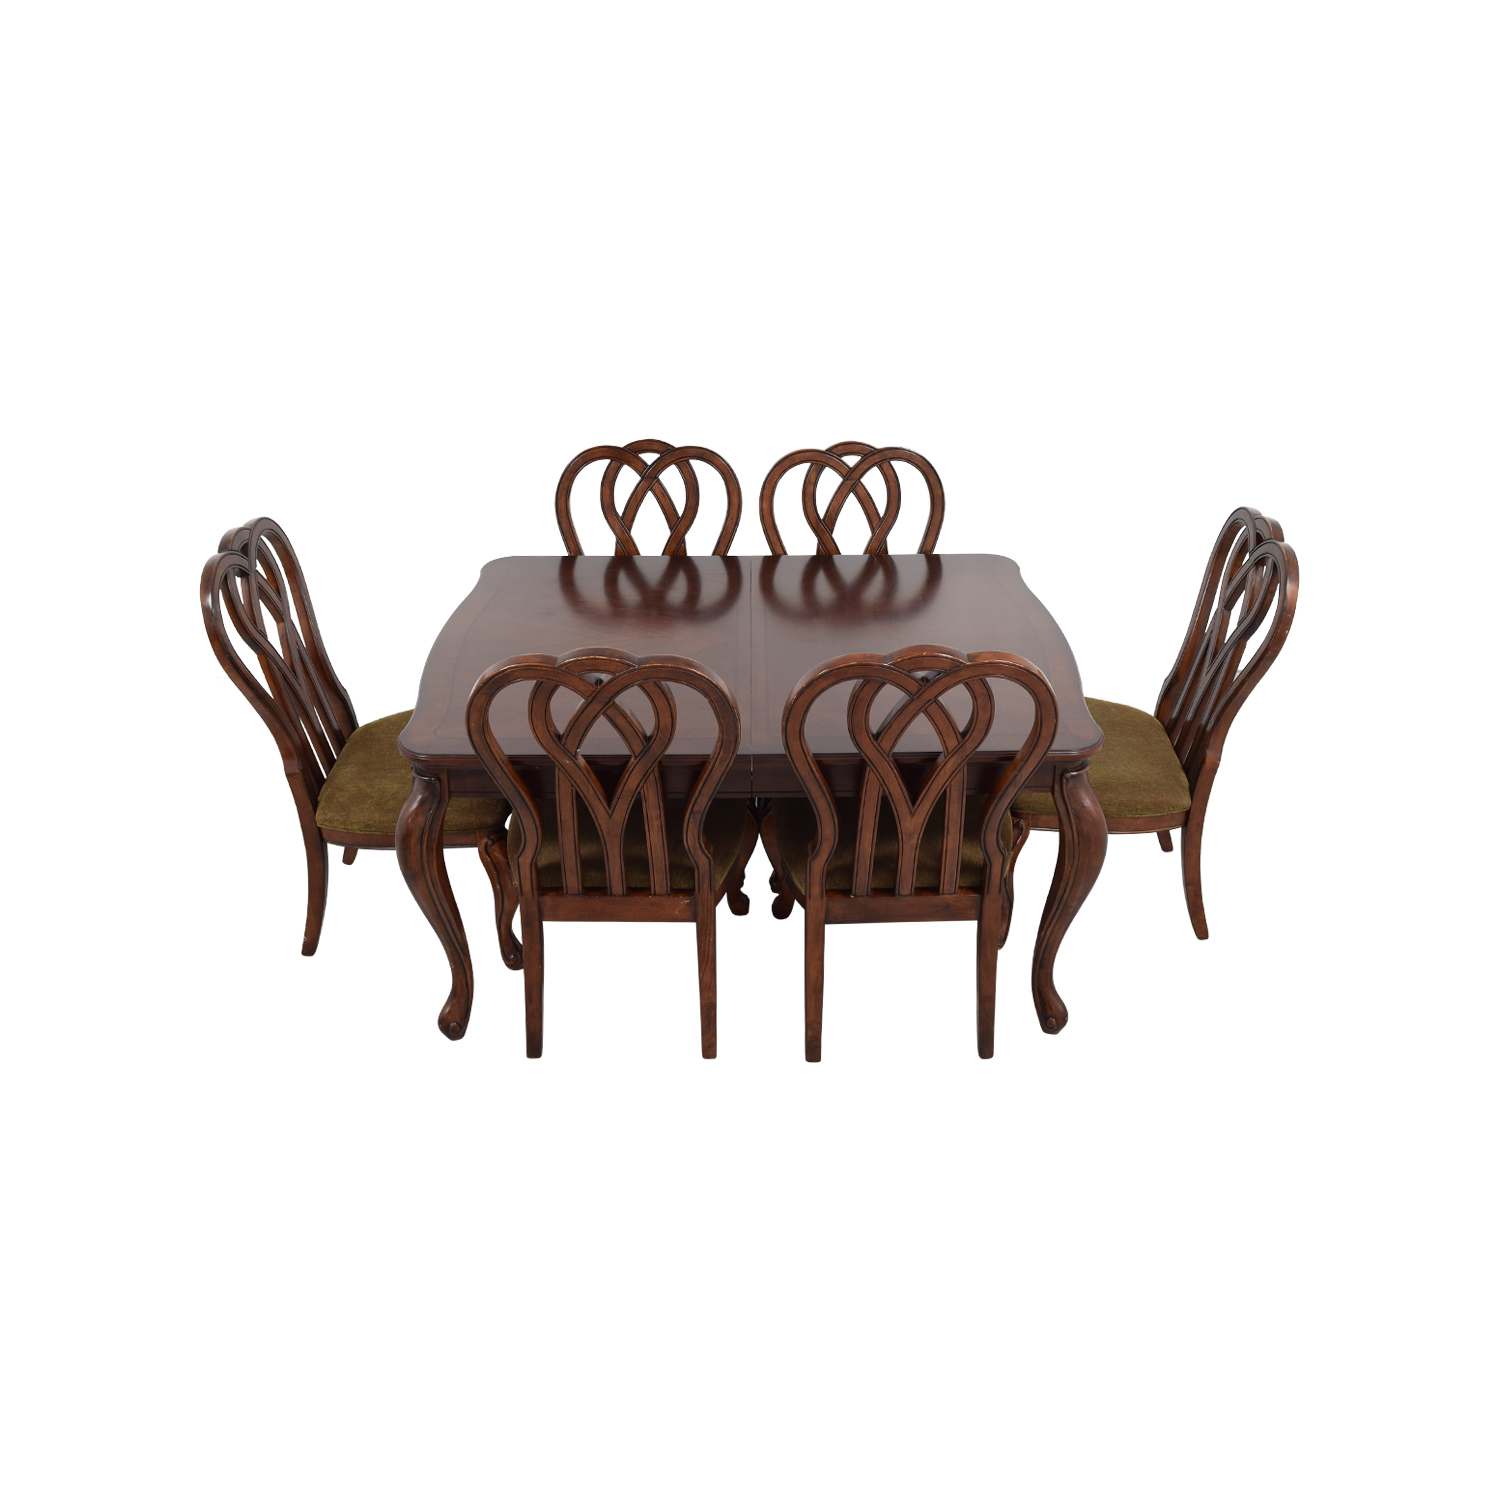 Wood Dining Table with Six Upholstered Chairs second hand